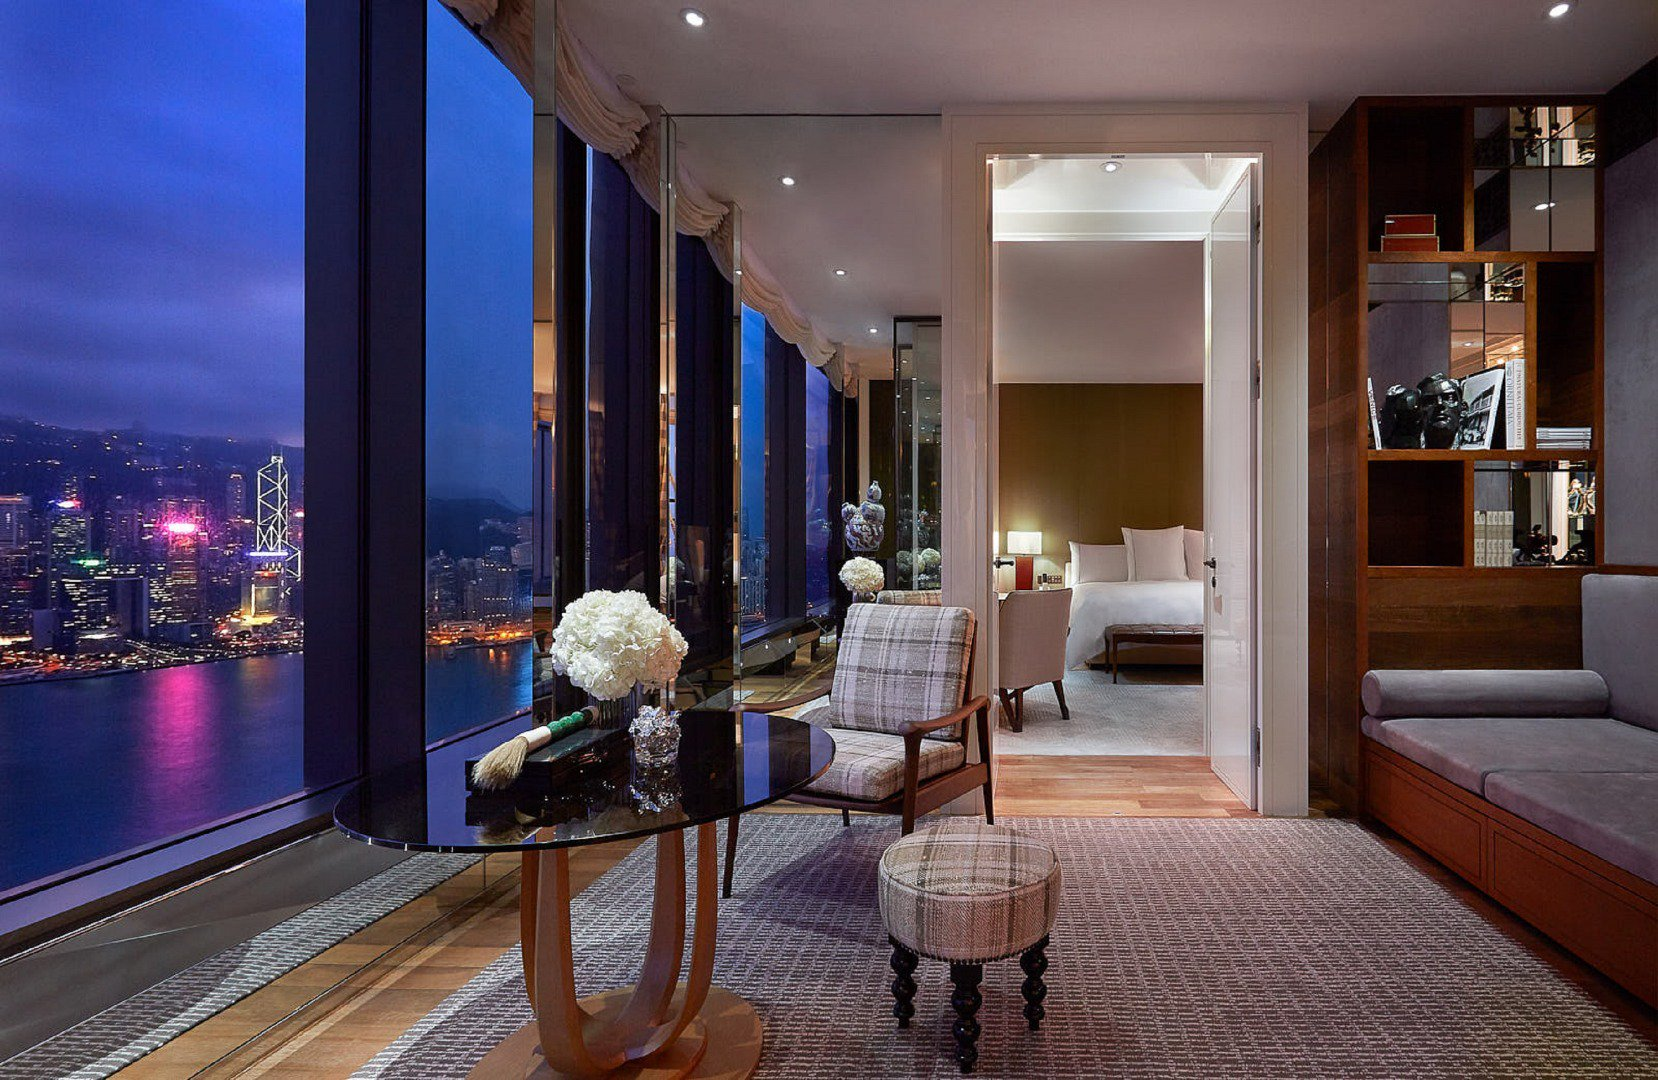 The Most Expensive Hotel Suites expensive hotel The Most Expensive Hotel Suites rosewood 2